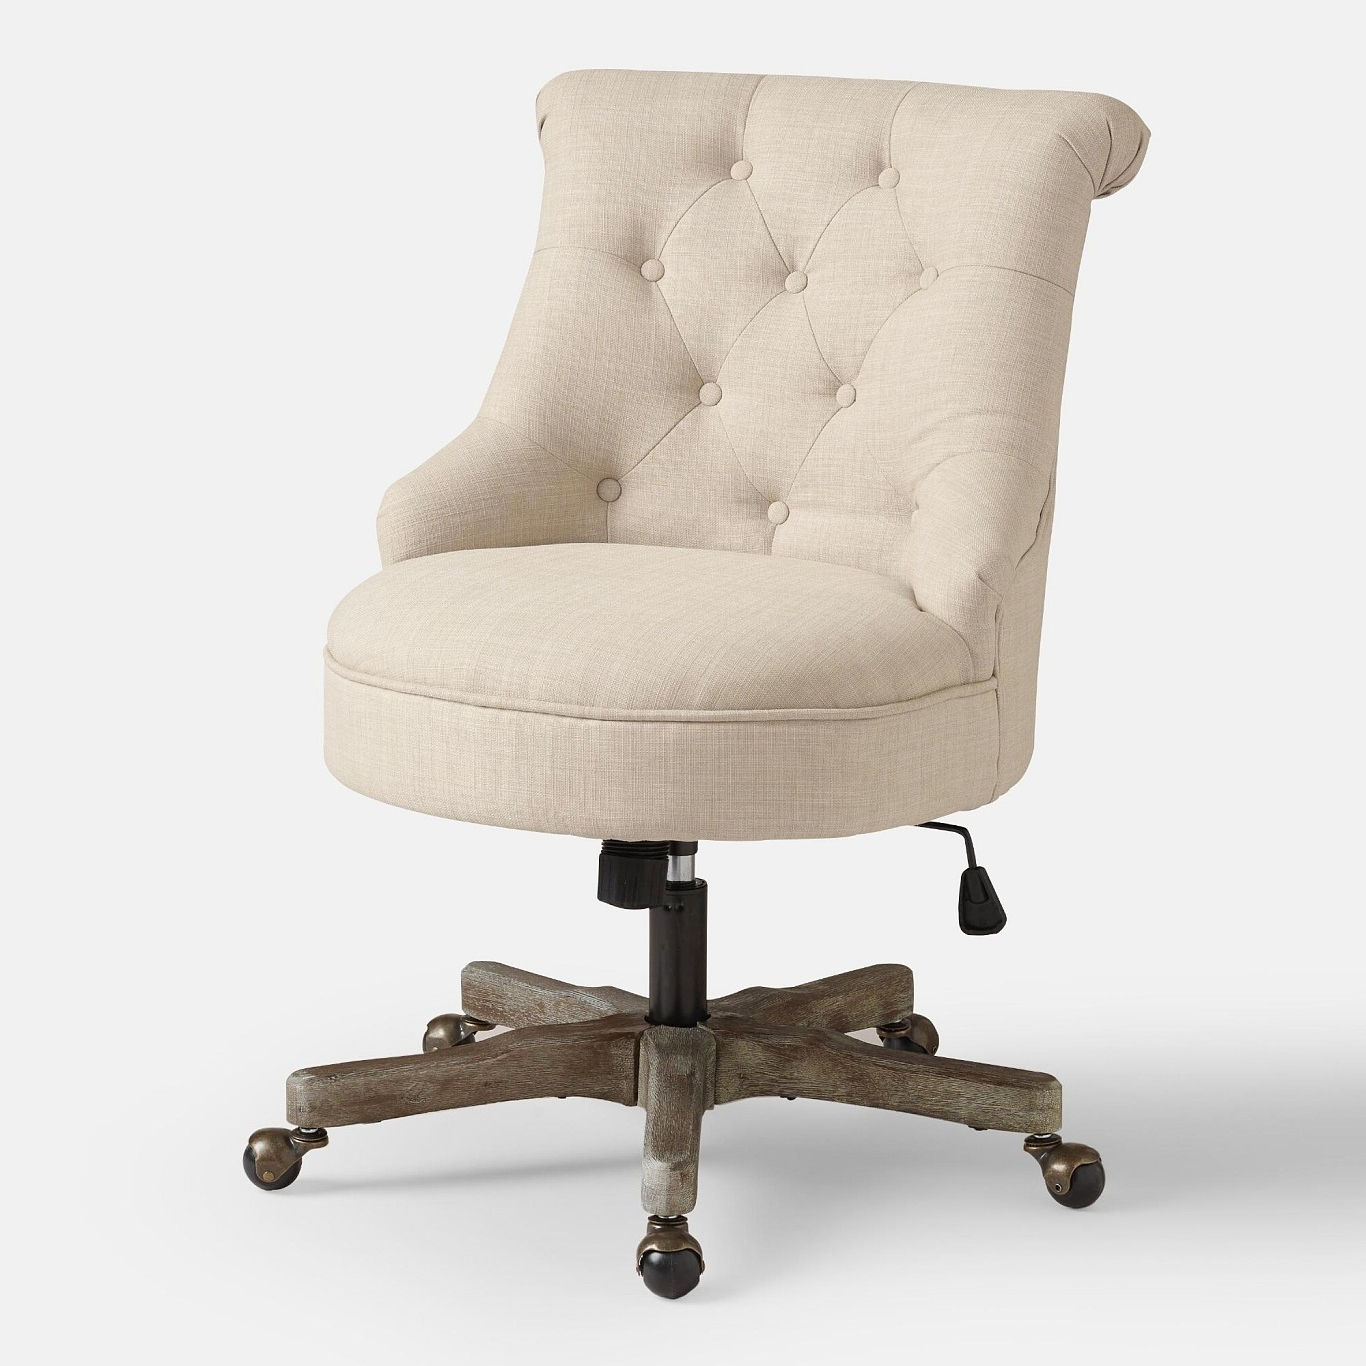 Hon Executive Office Chairs In Well Known Ikea Desk Micke Hon Chair Parts Executive Office Leather Chair (View 6 of 20)